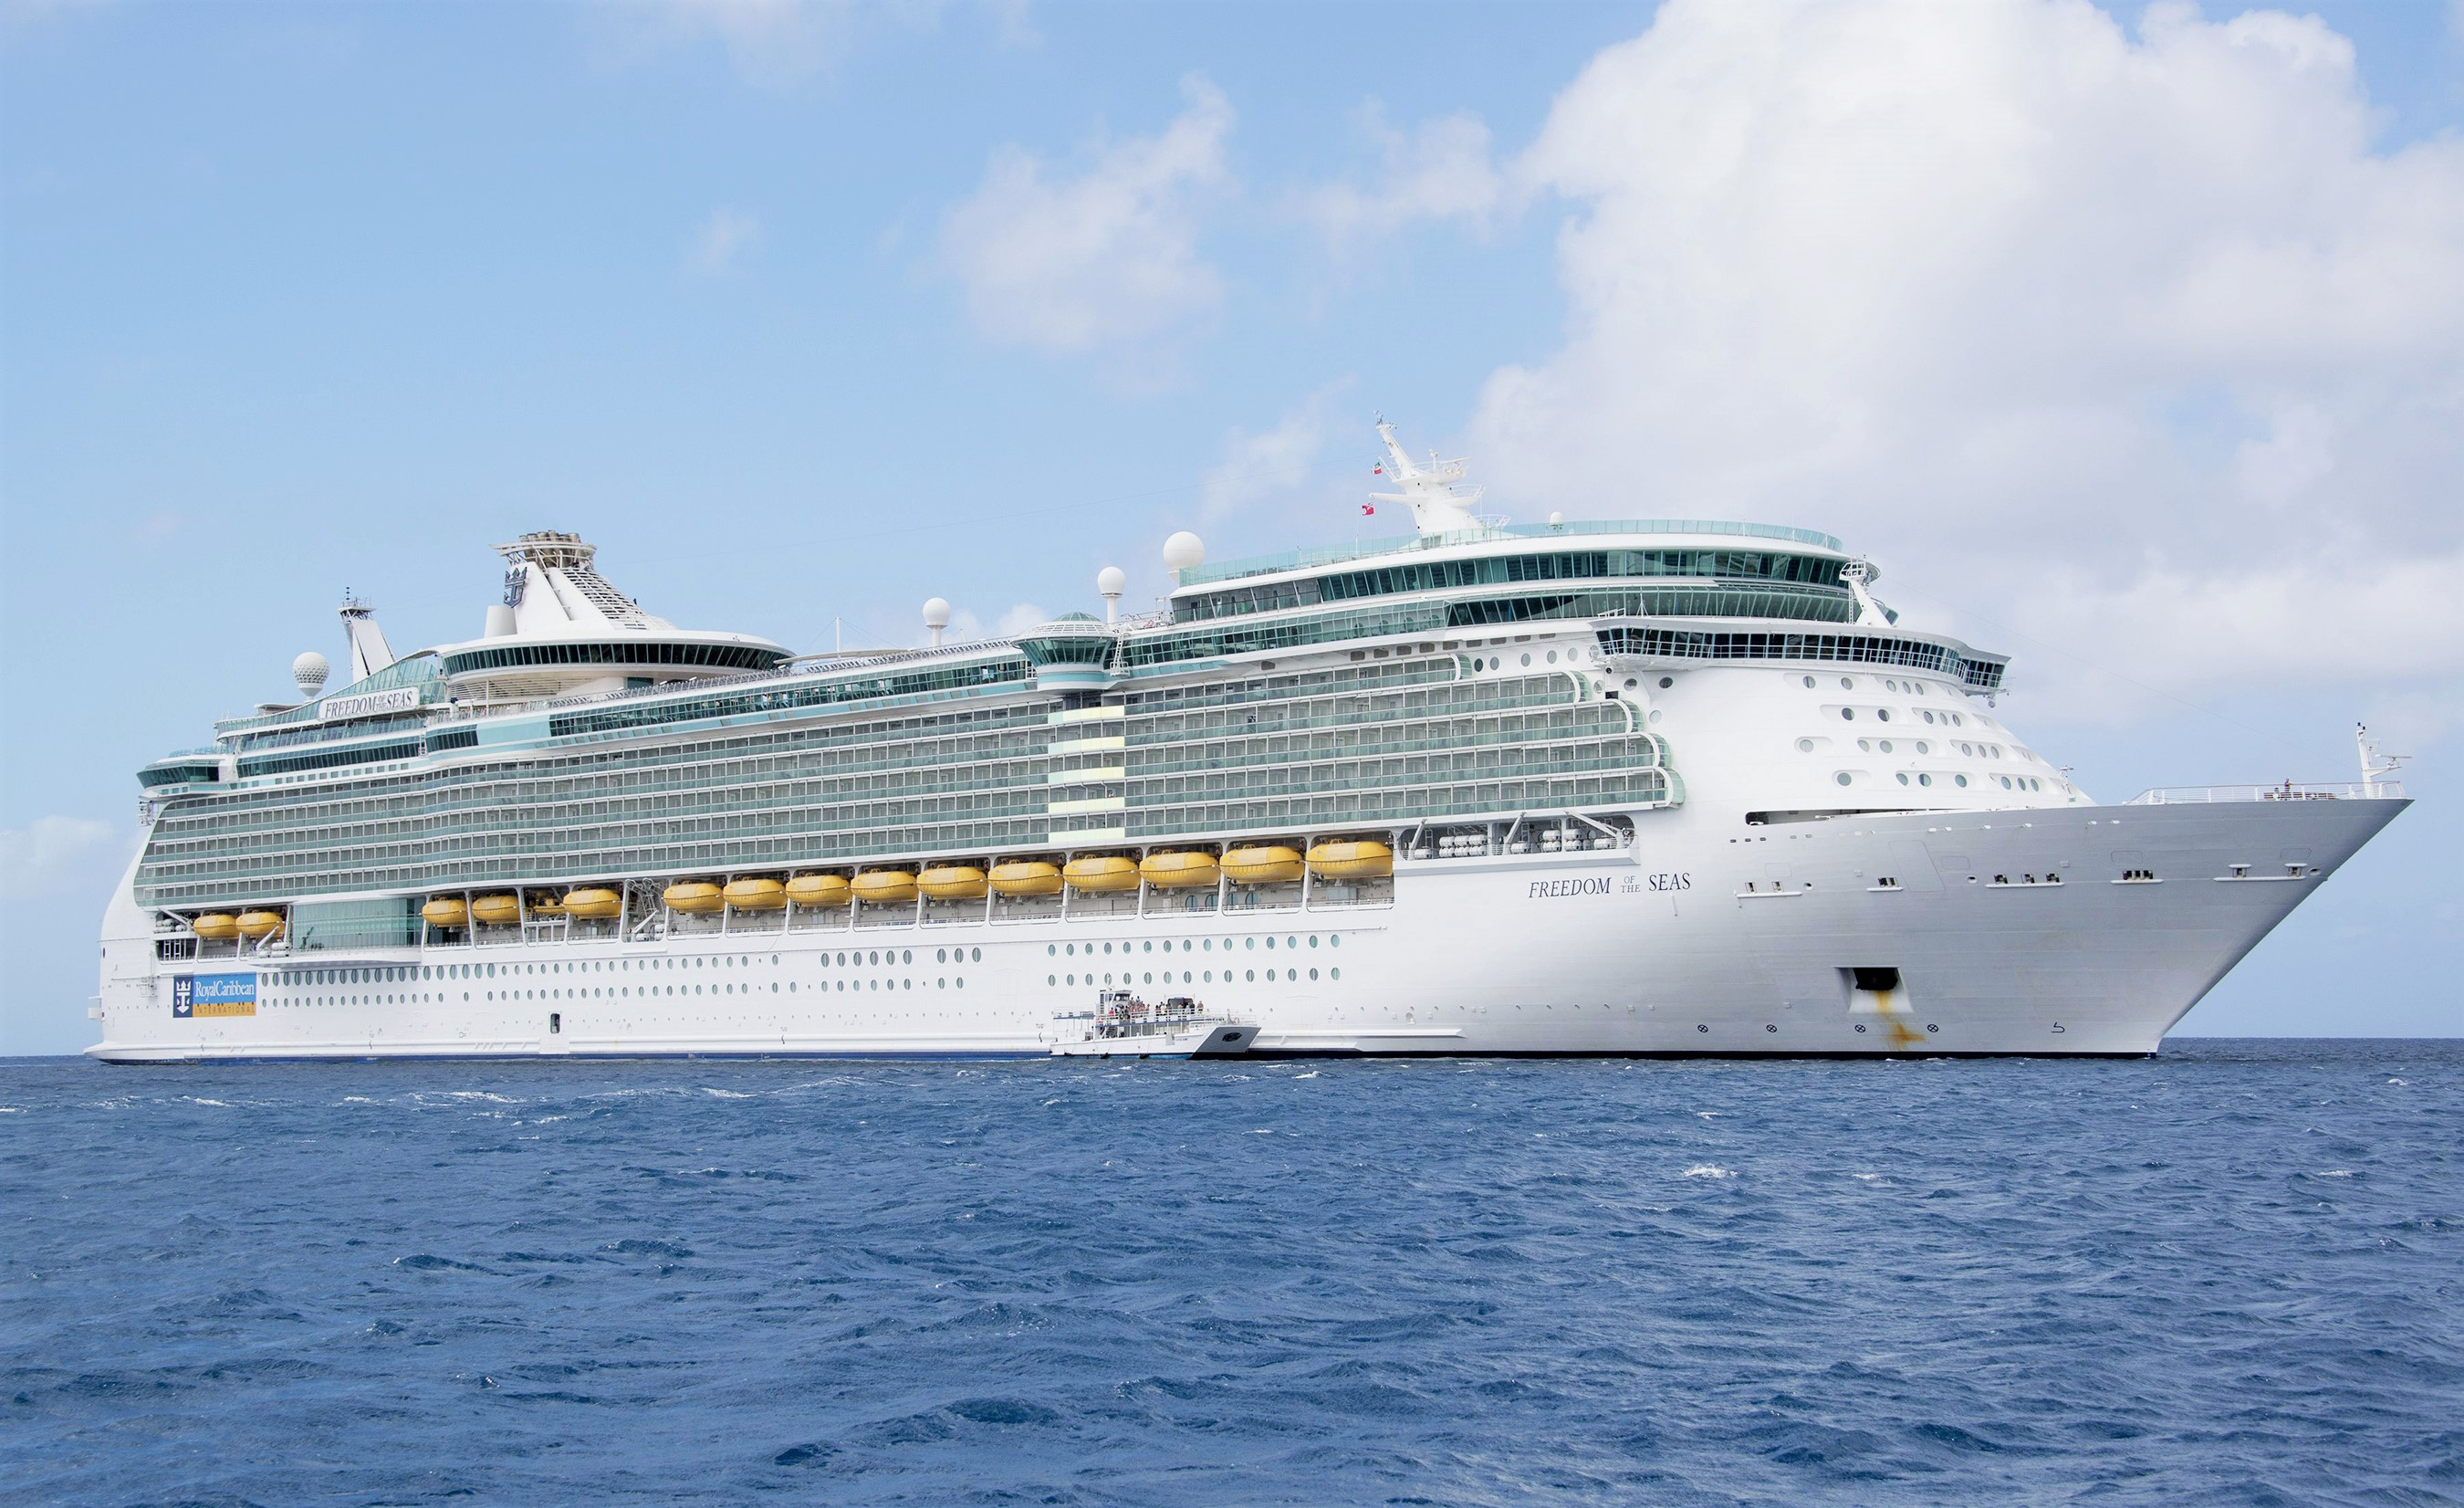 The Royal Caribbean Freedom of the Seas Cruise Ship